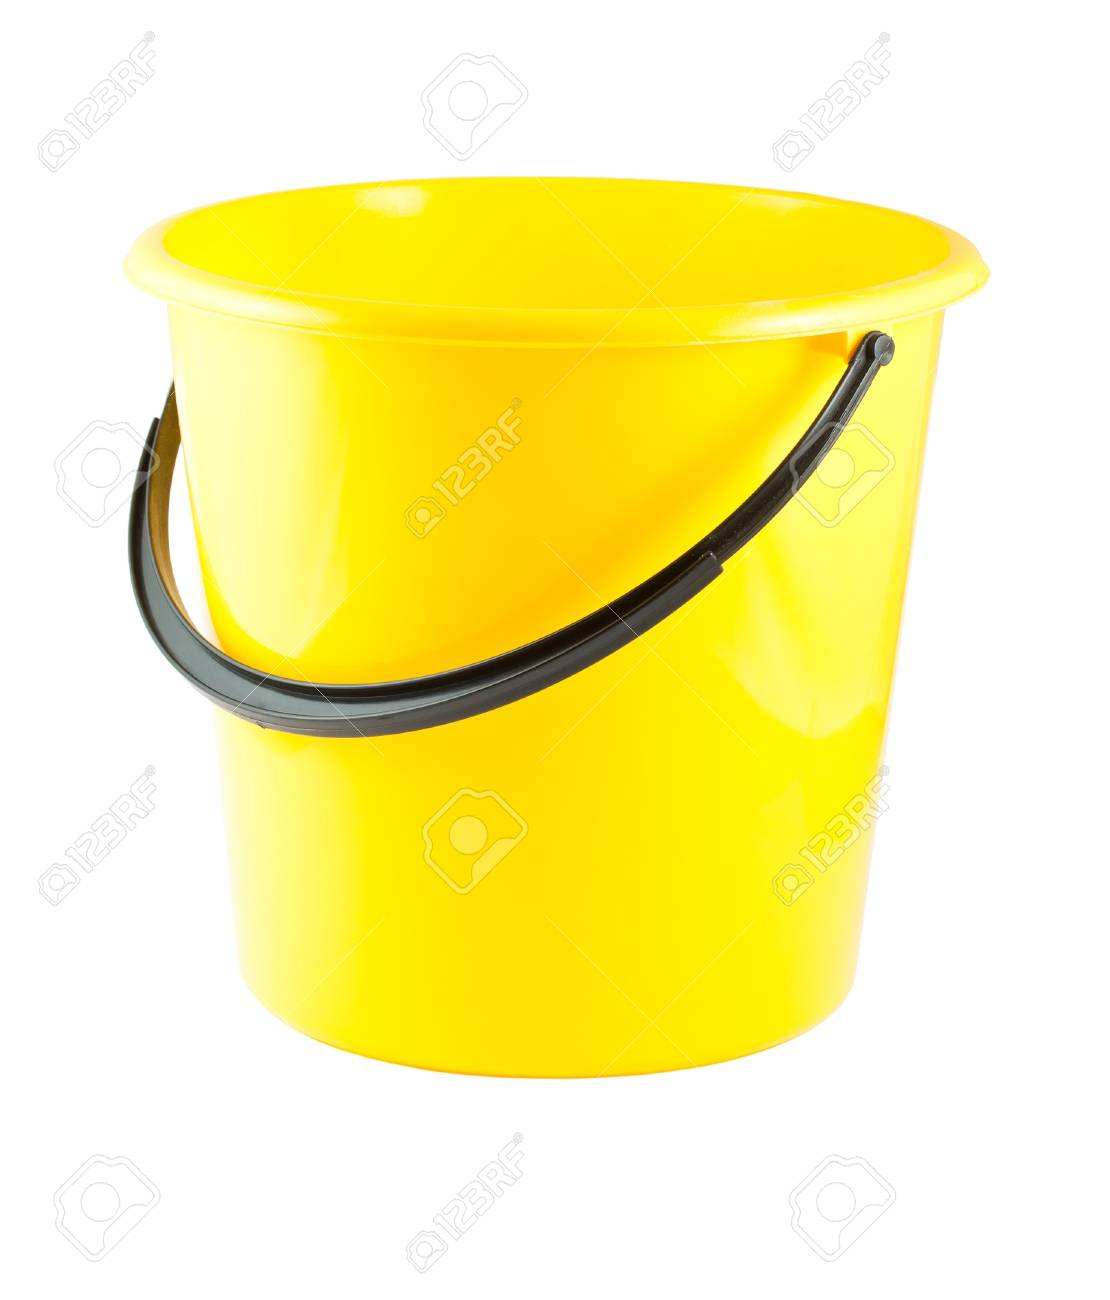 Yellow plastic bucket isolated on white background Stock Photo - 14404146